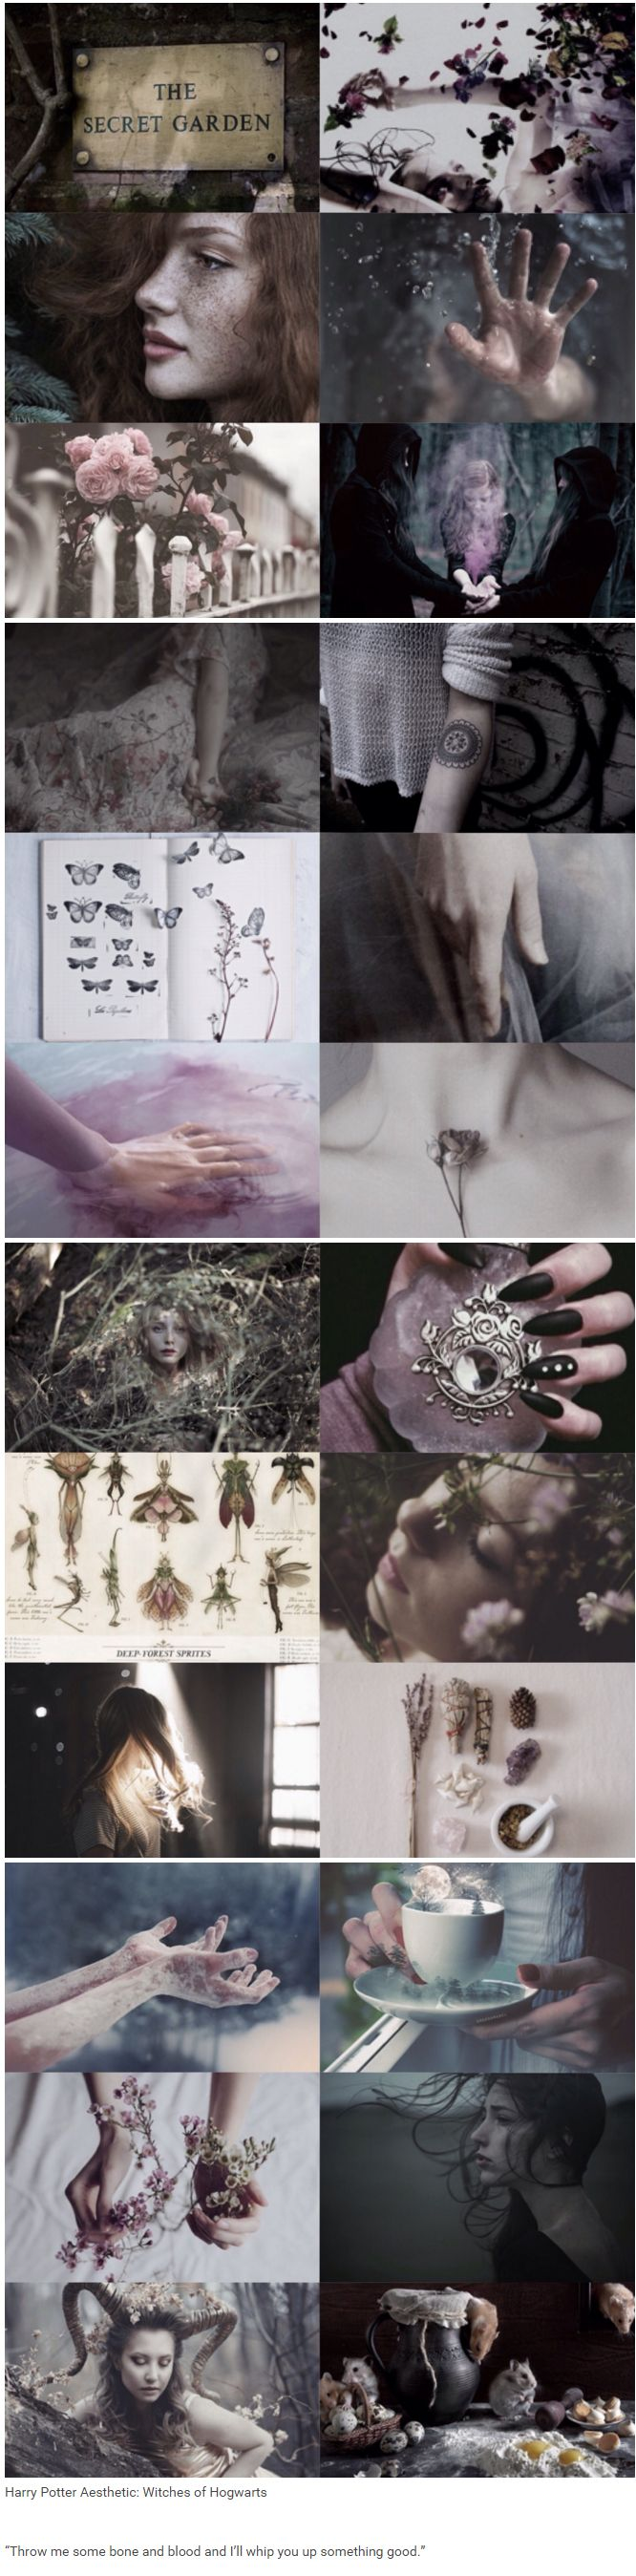 "foundinghouses:  Harry Potter Aesthetic: Witches of Hogwarts | ""Throw me some bone and blood and I'll whip you up something good."""